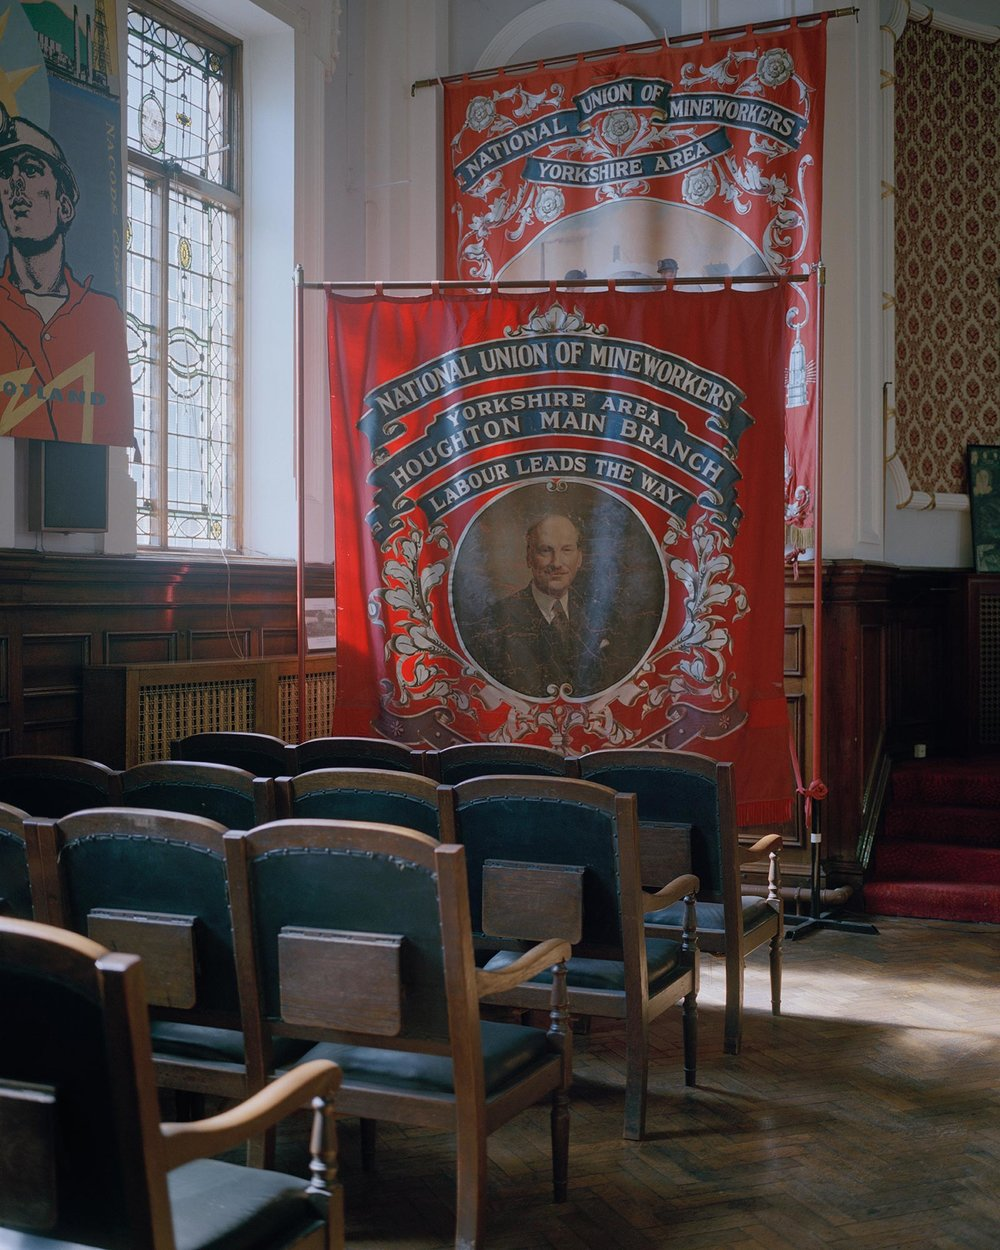 Houghton Main branch banner, National Union of Mineworkers, Barnsley, South Yorkshire.